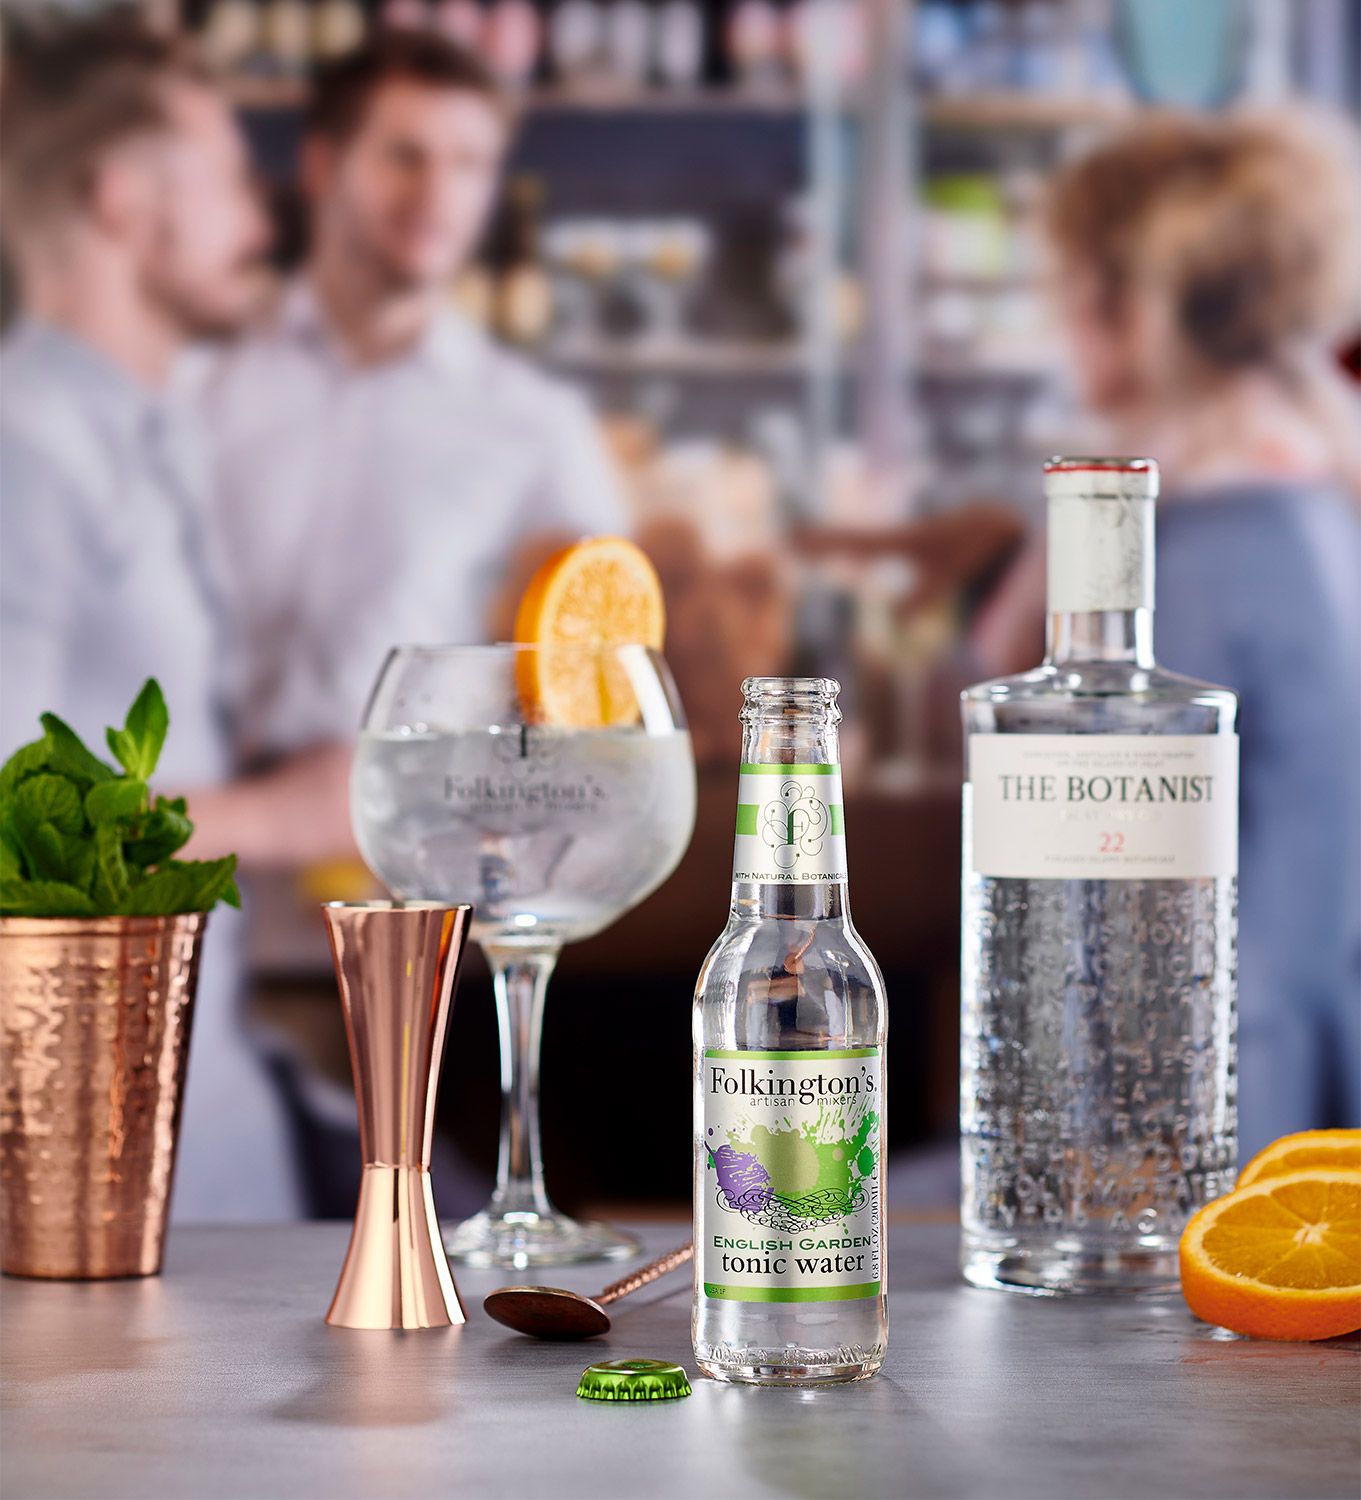 Folkingtons English Garden Tonic water photographed in a bar setting